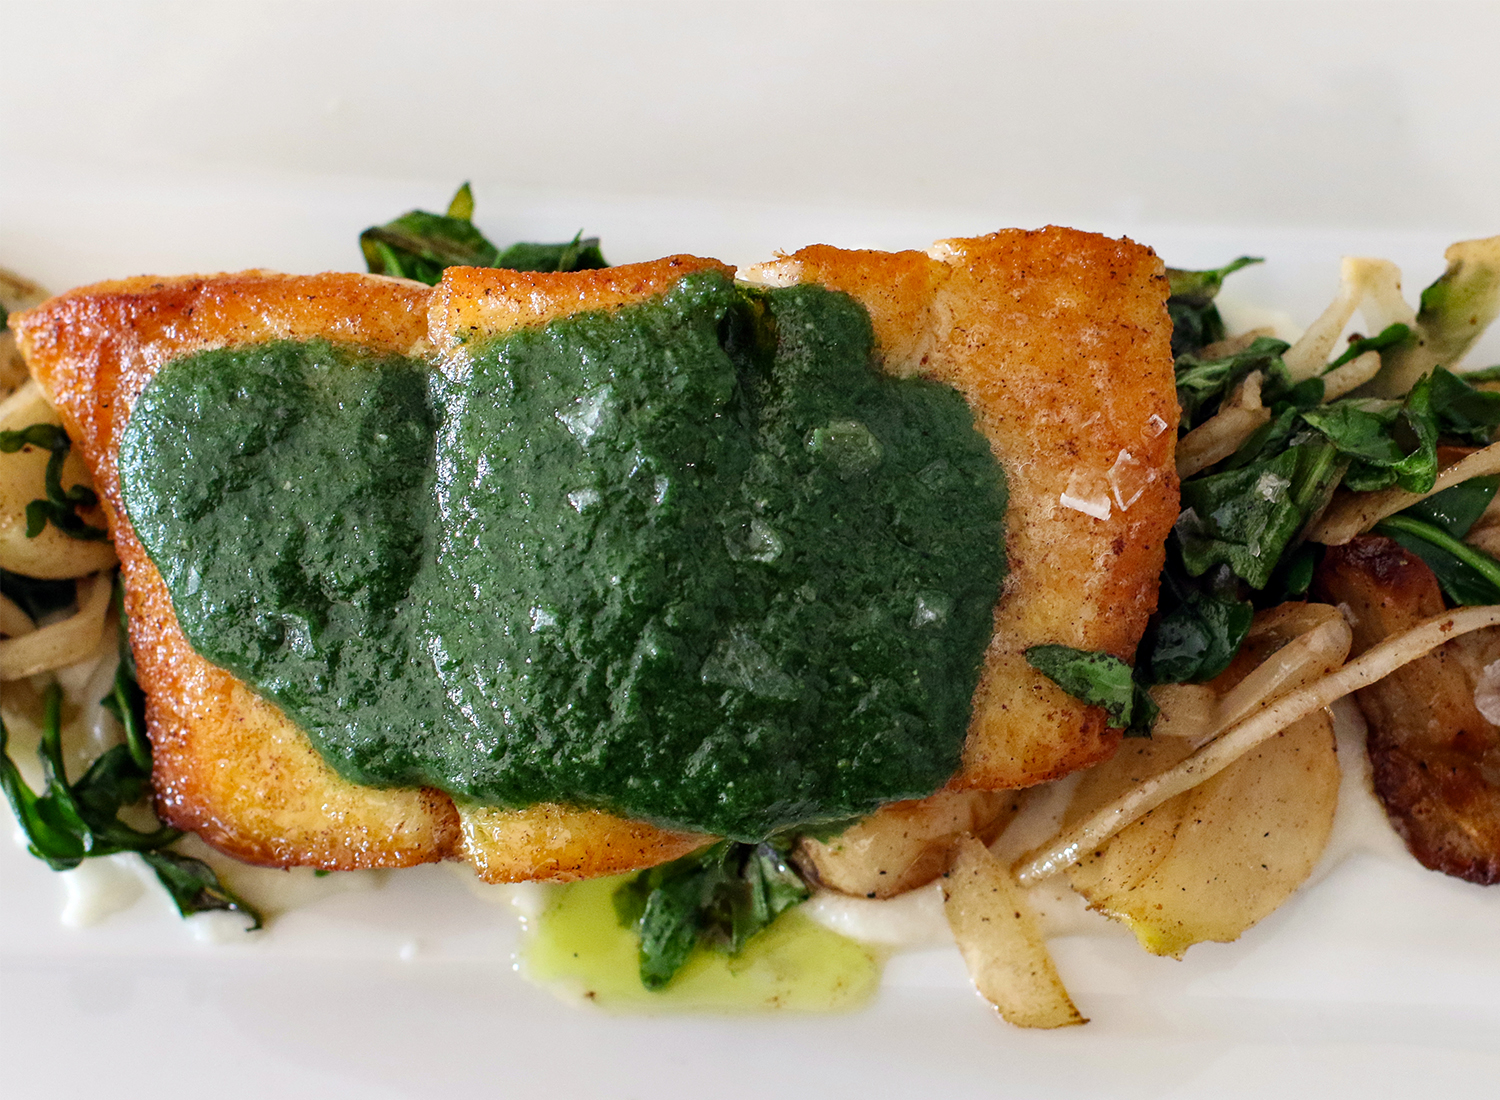 Seared halibut at Perch and Plow restaurant in Santa Rosa. Heather Irwin/PD